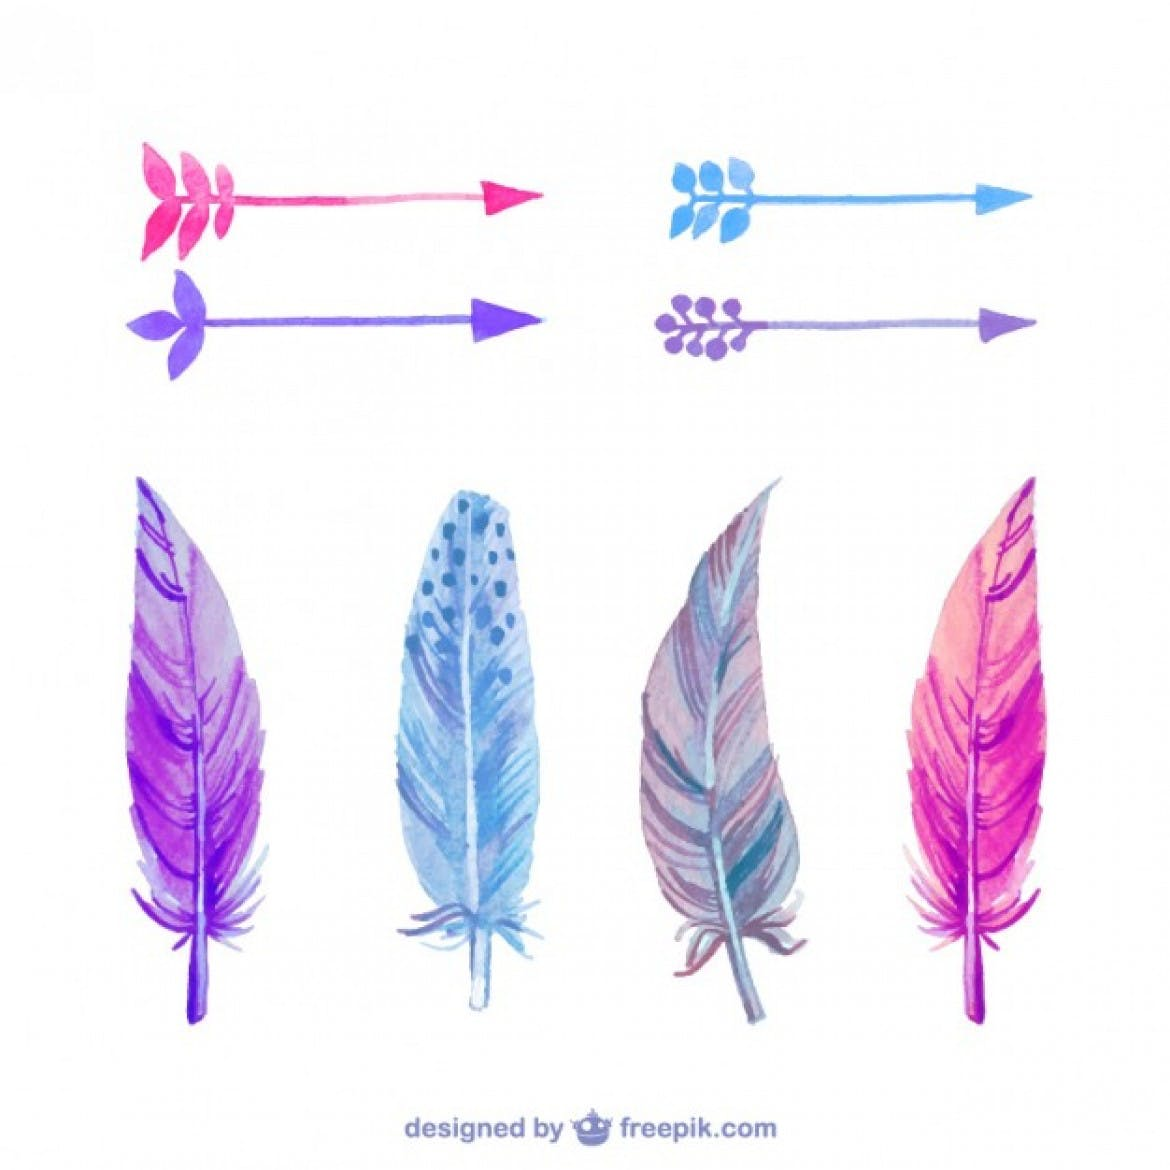 wpid-watercolor-feathers-and-arrows_23-2147509171-1170x1170